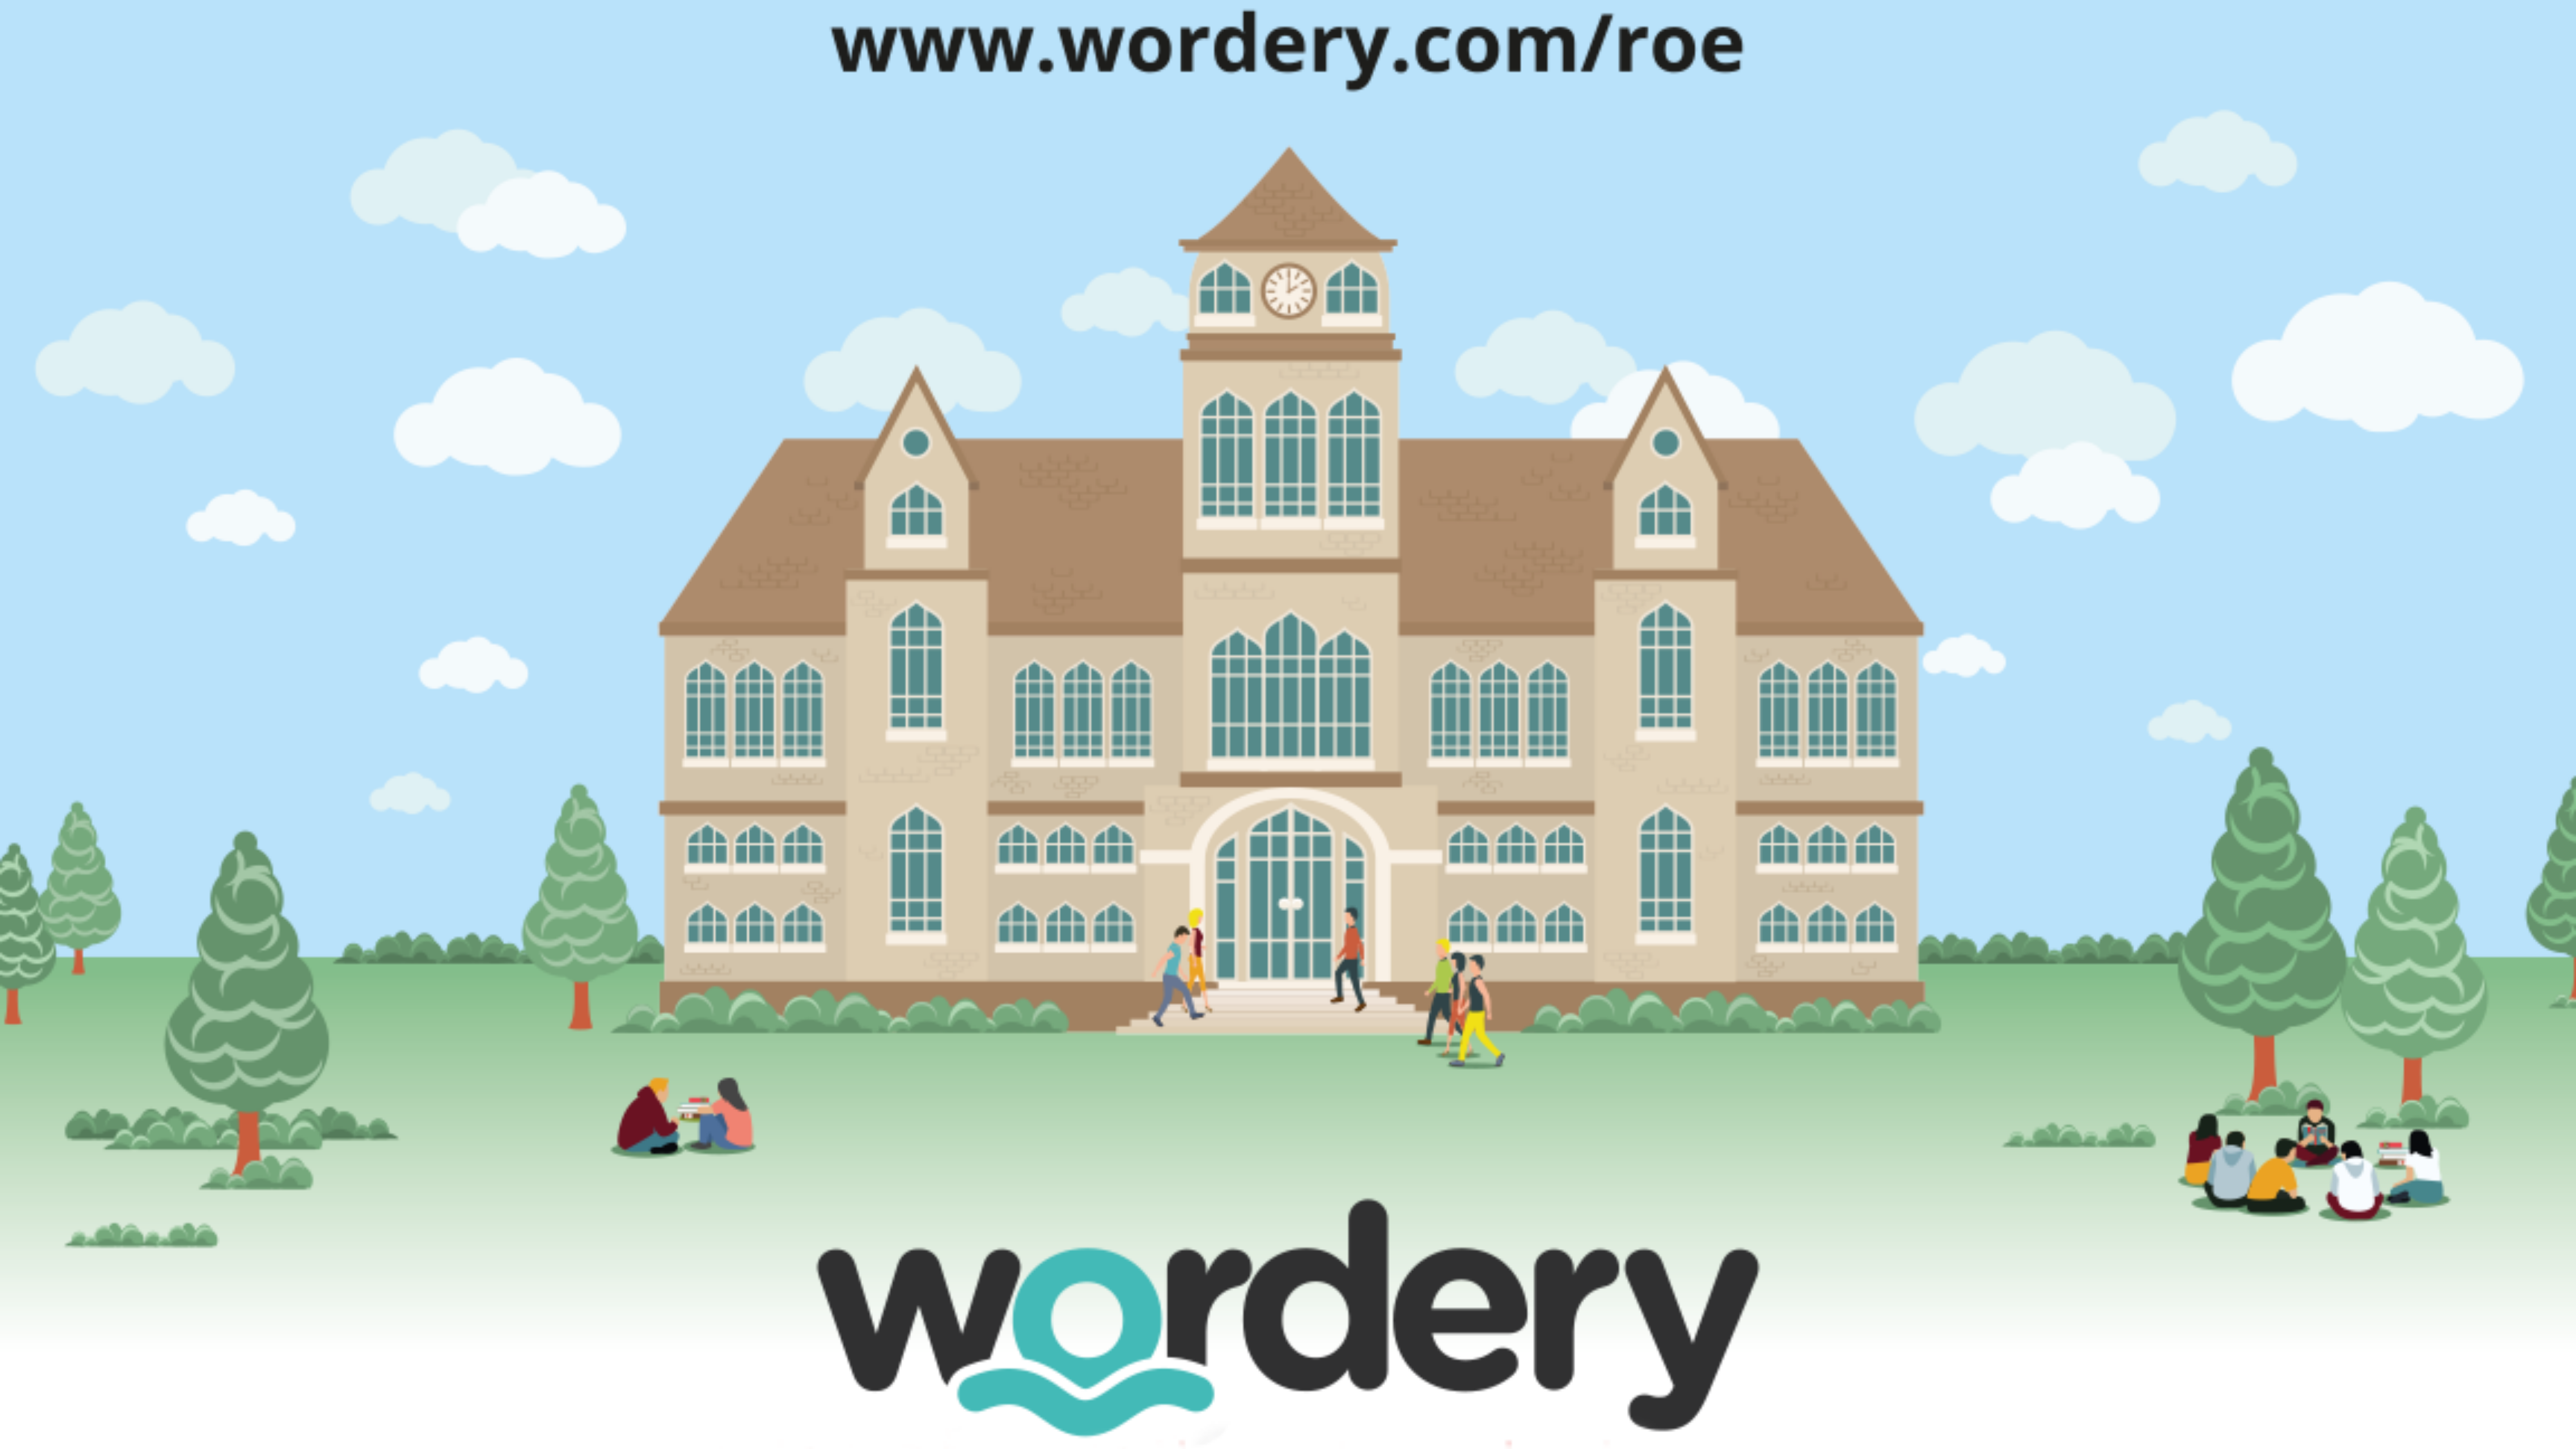 wordery discount on books for roehampton students